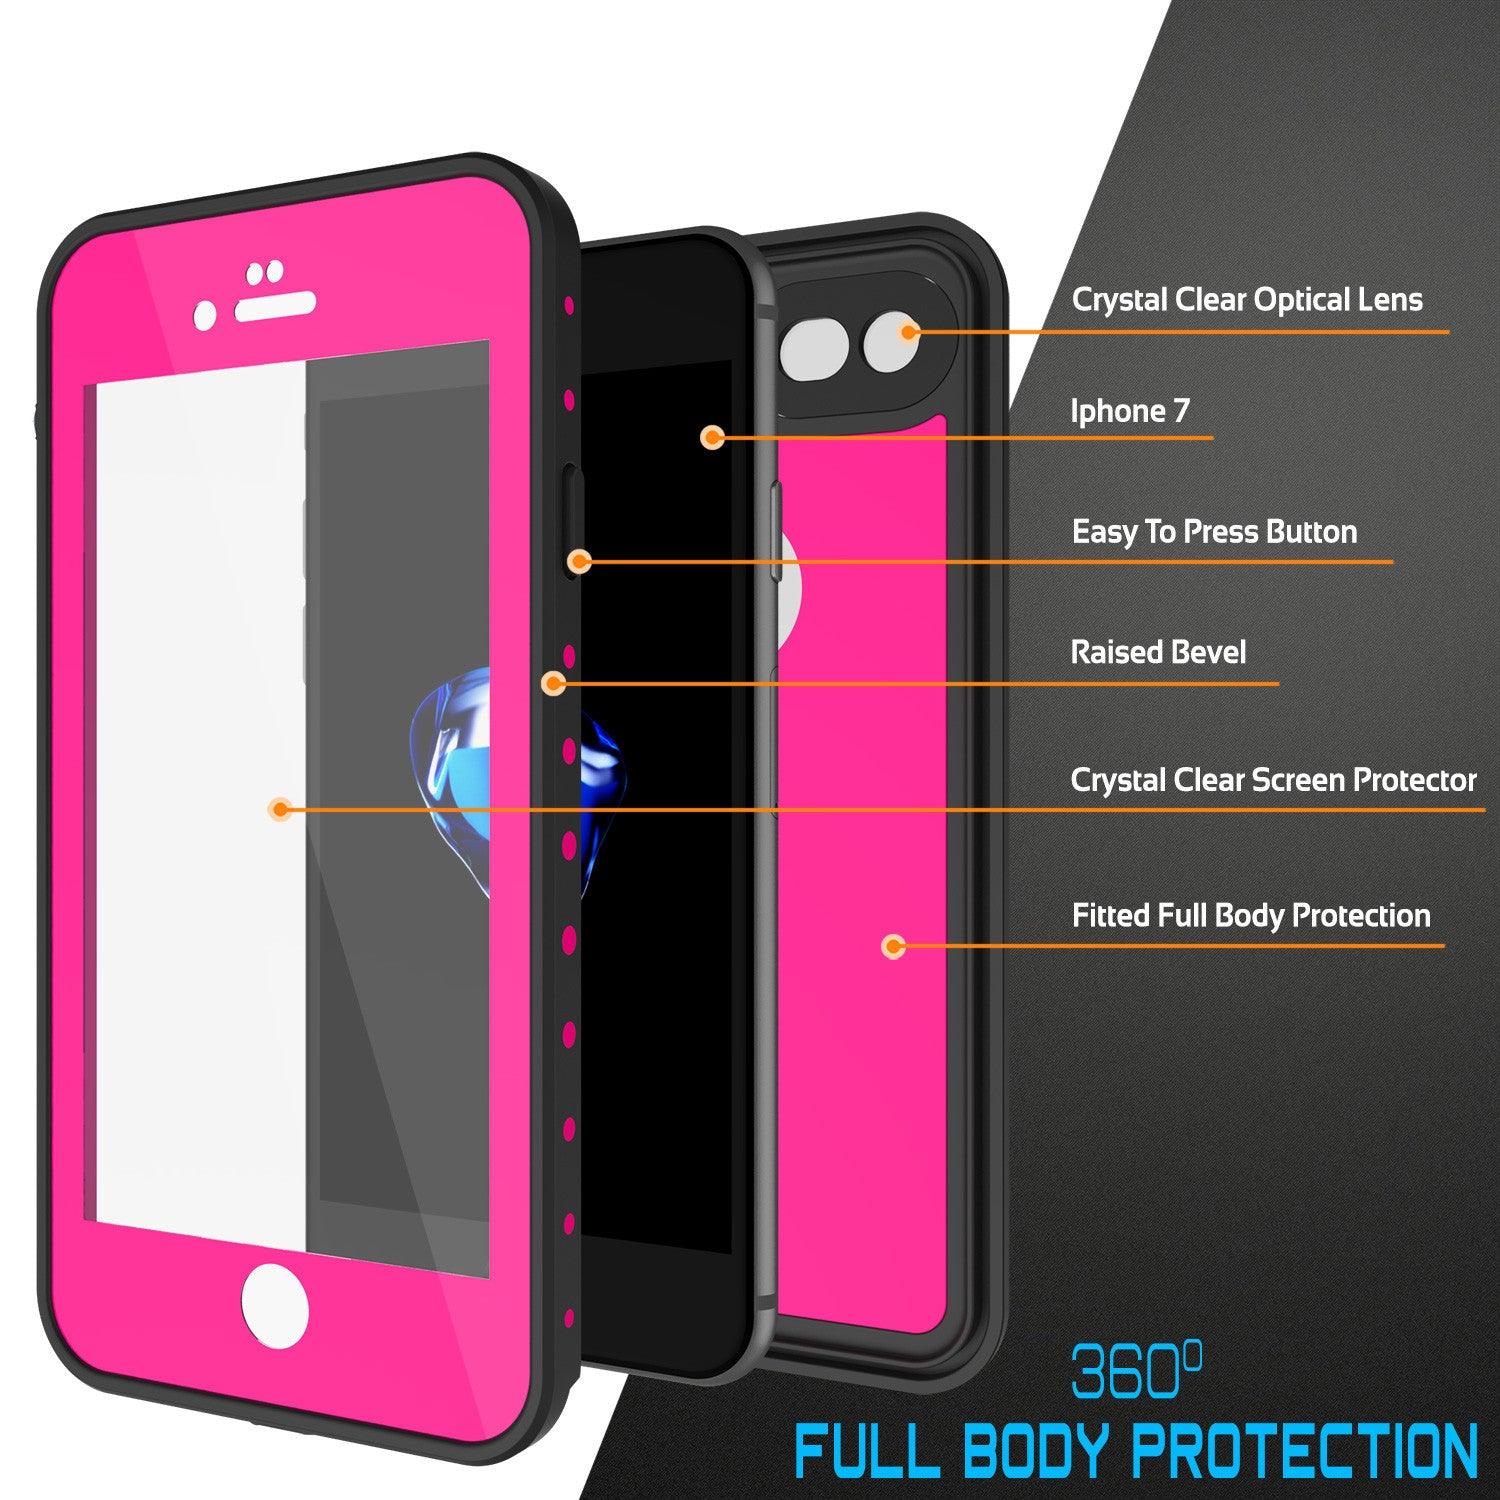 iPhone 7 Waterproof IP68 Case, Punkcase [Pink] [StudStar Series] [Slim Fit] [Dirtproof] [Snowproof]